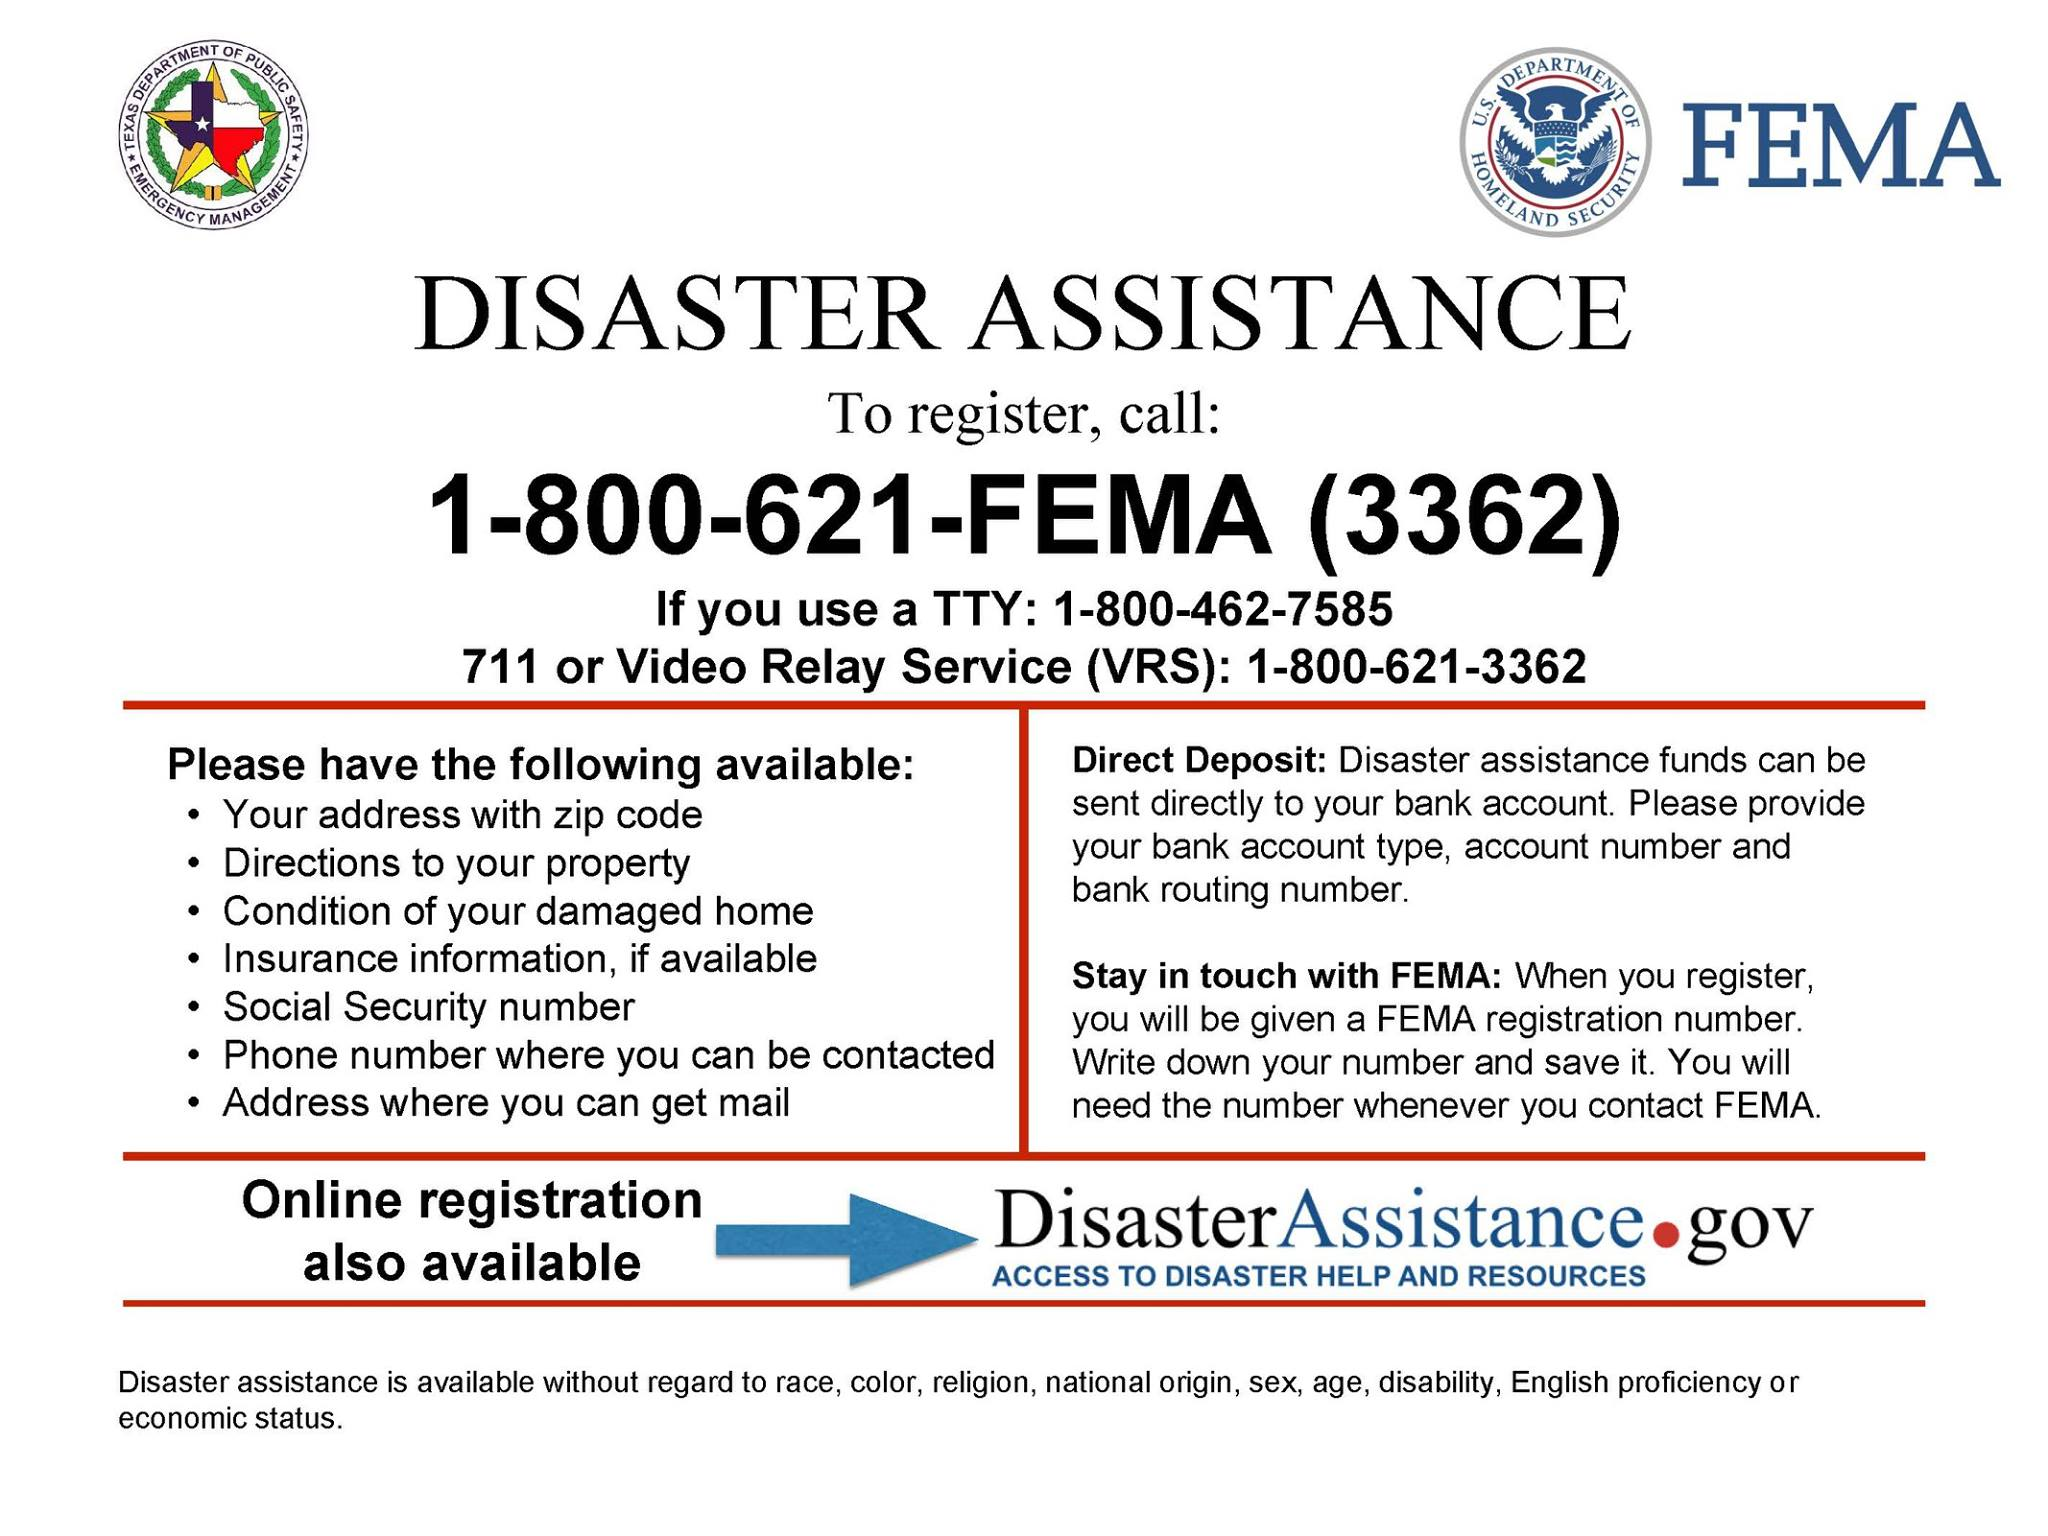 FEMA Disaser assistance